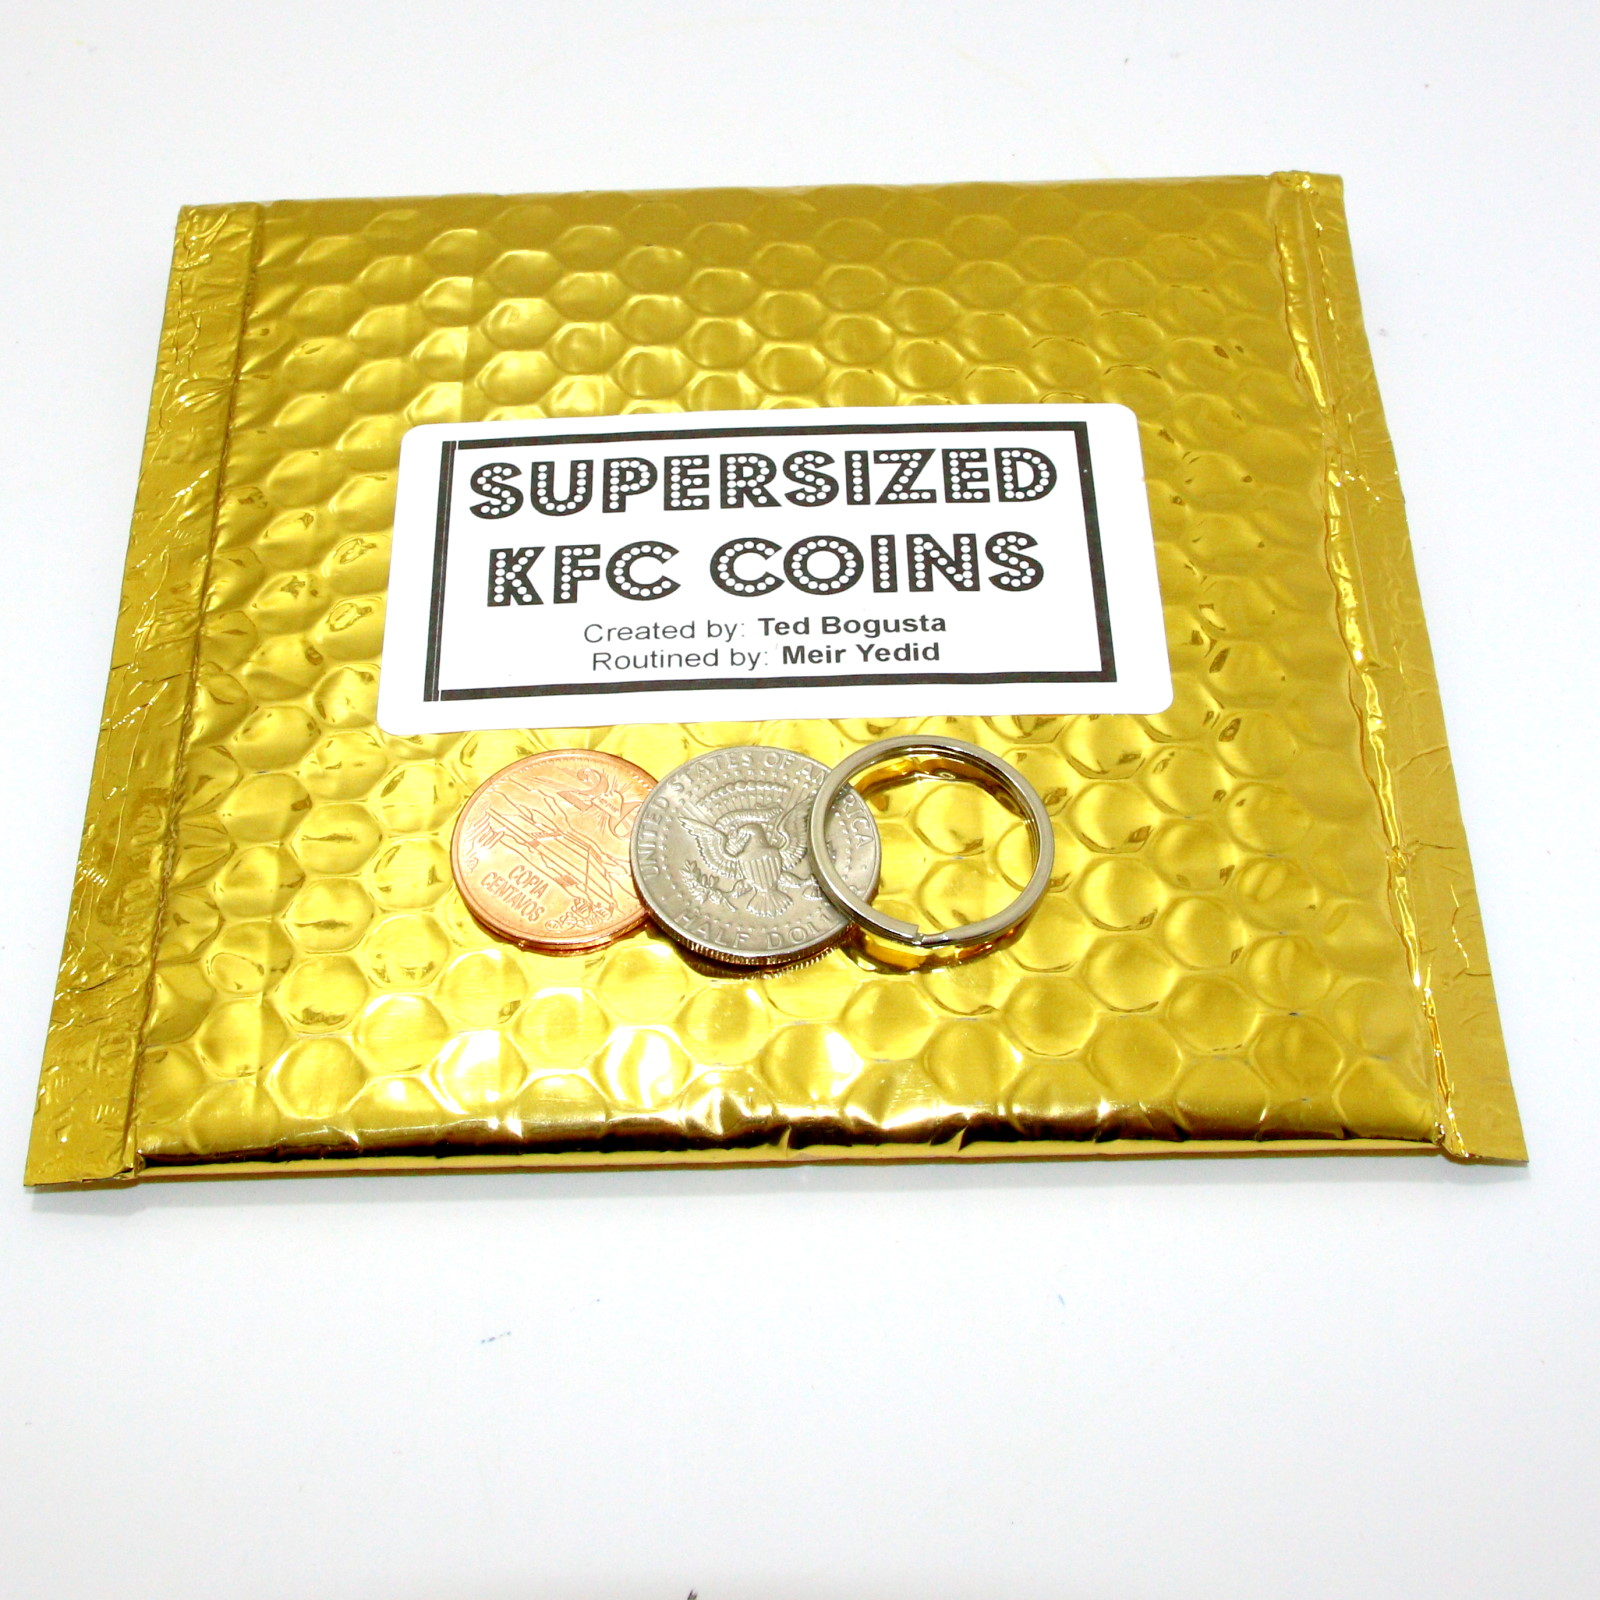 Supersized KFC Coins by Ted Bogusta, Meir Yedid